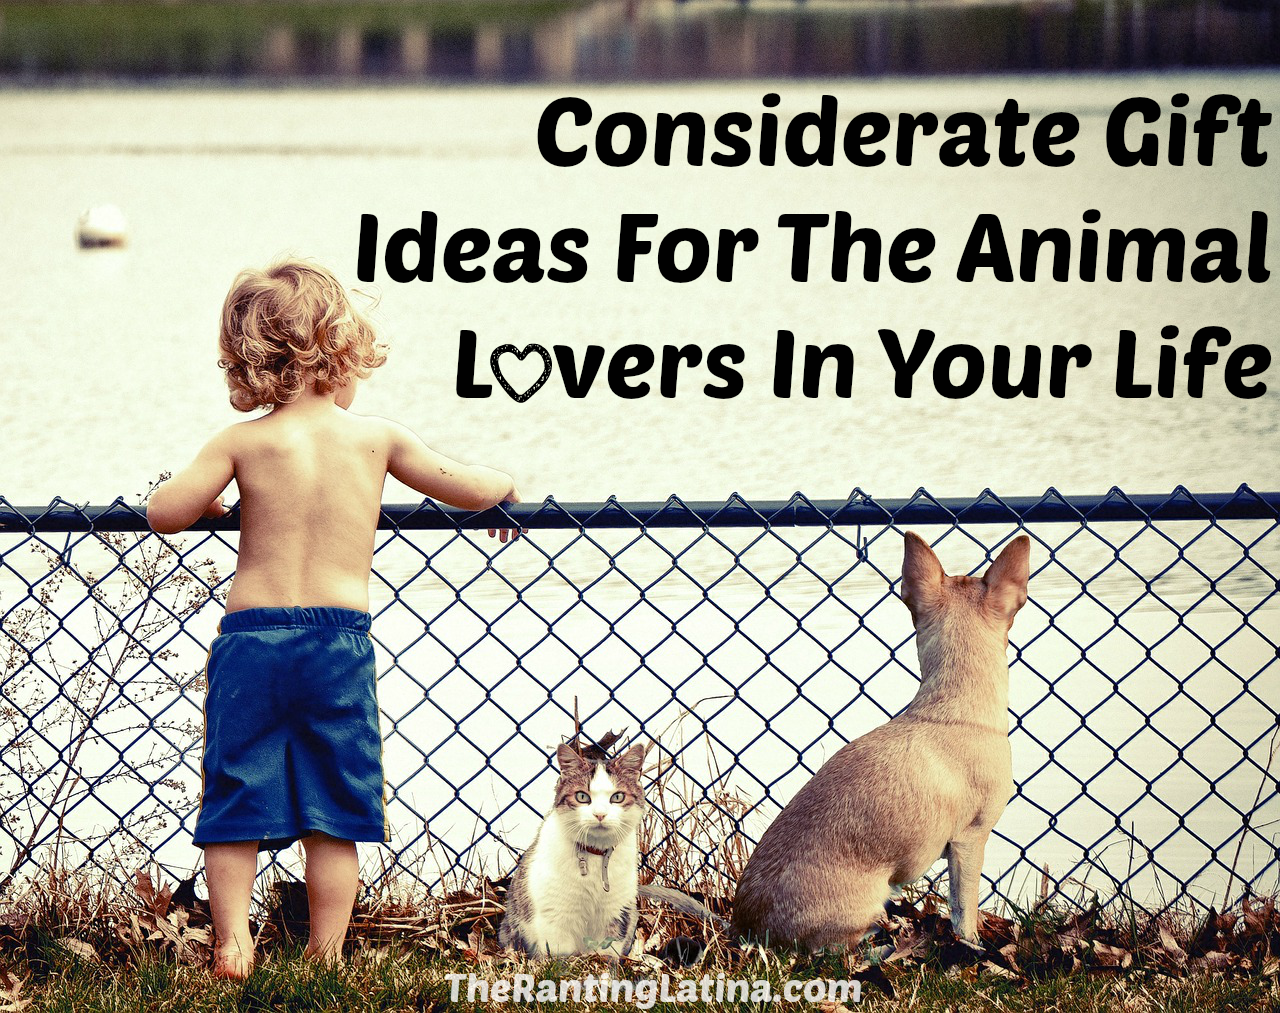 Considerate Gift Ideas for Animal Lovers